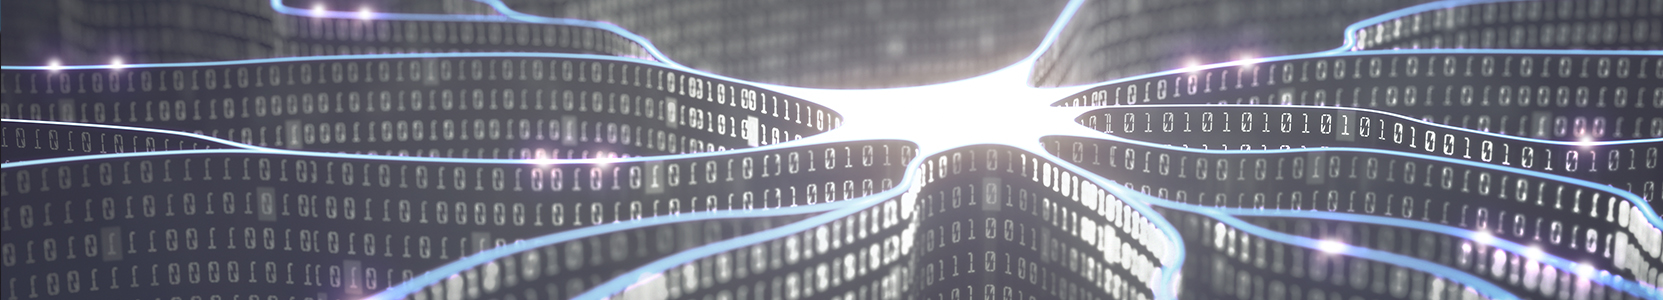 MS Technik